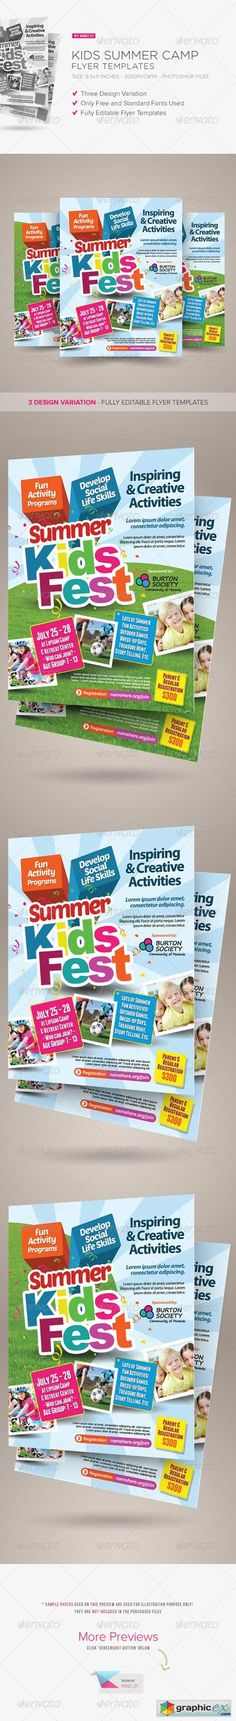 Summer Camp Flyer | Camping And Summer